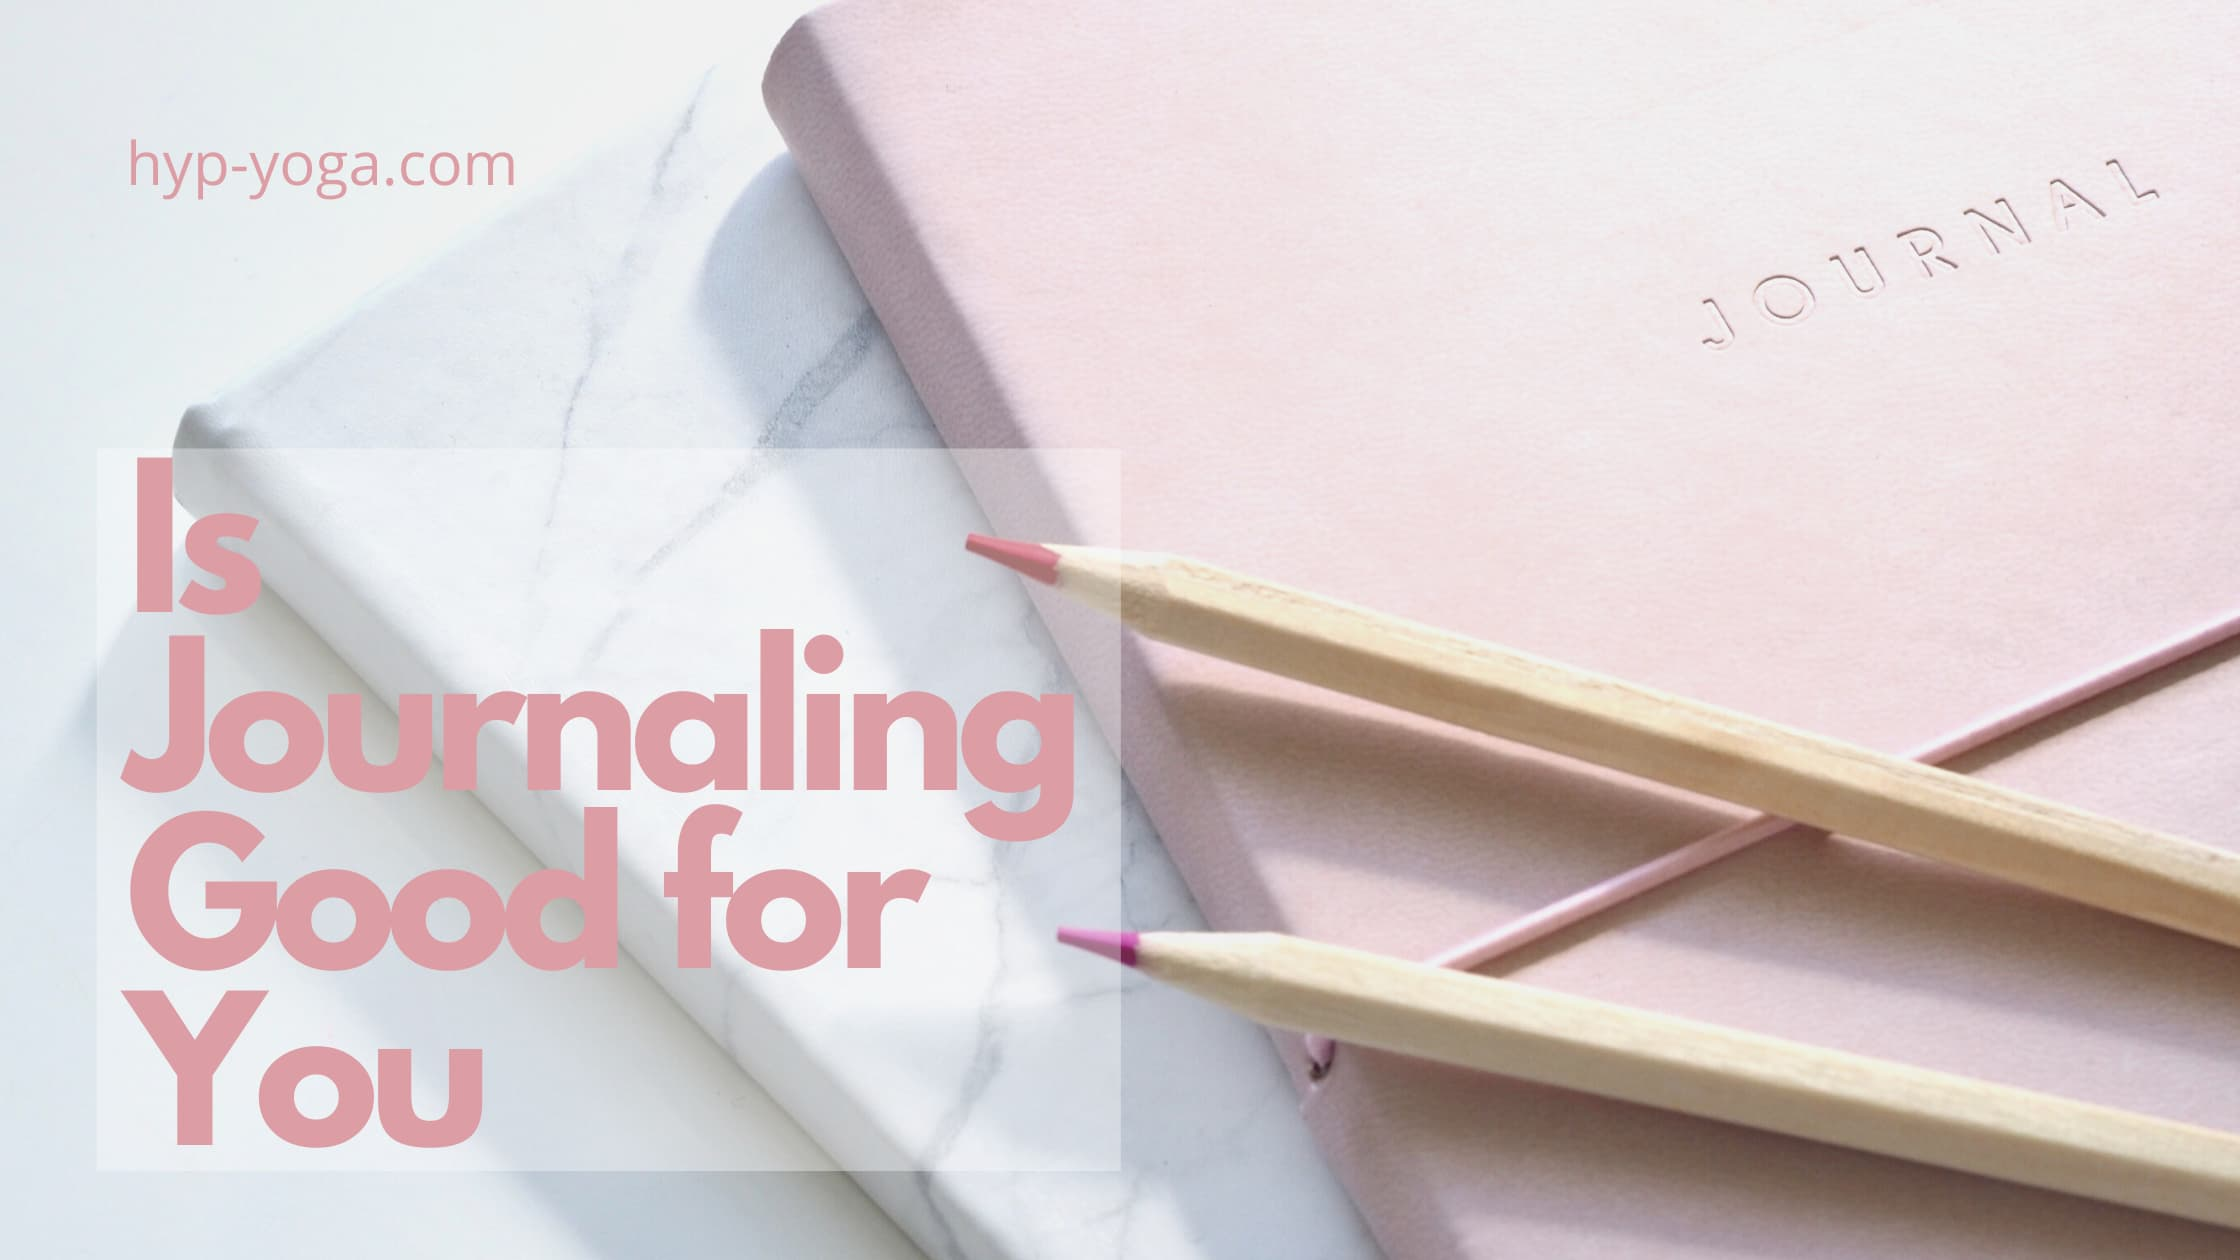 Is Journaling Good for You